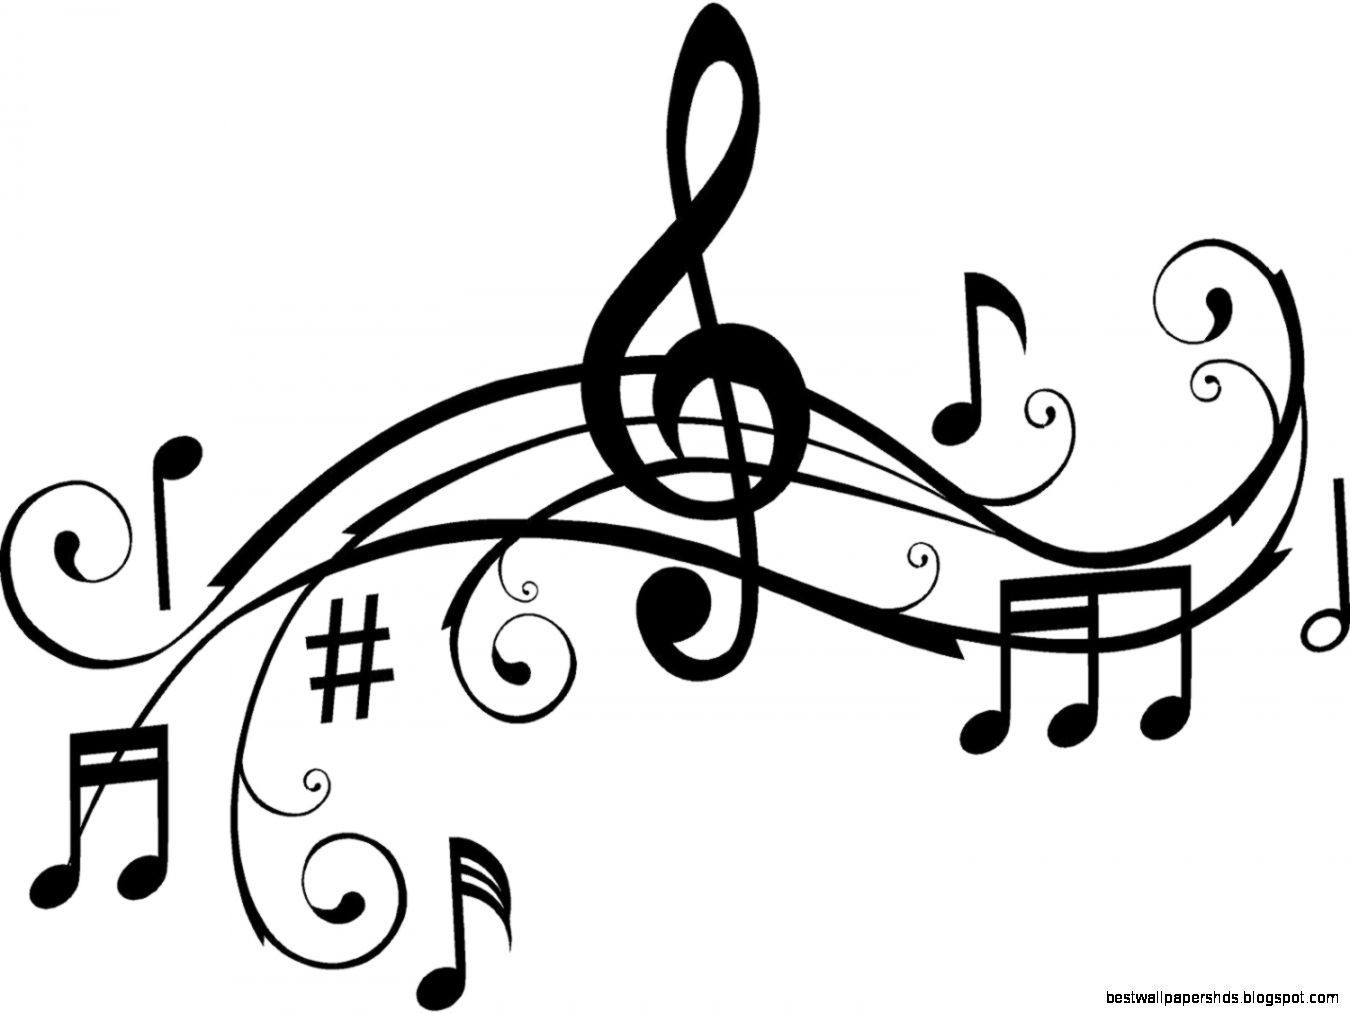 music notes clipart black and white clipart panda free clipart rh pinterest com free clip art music notes black and white free clip art musical notes borders